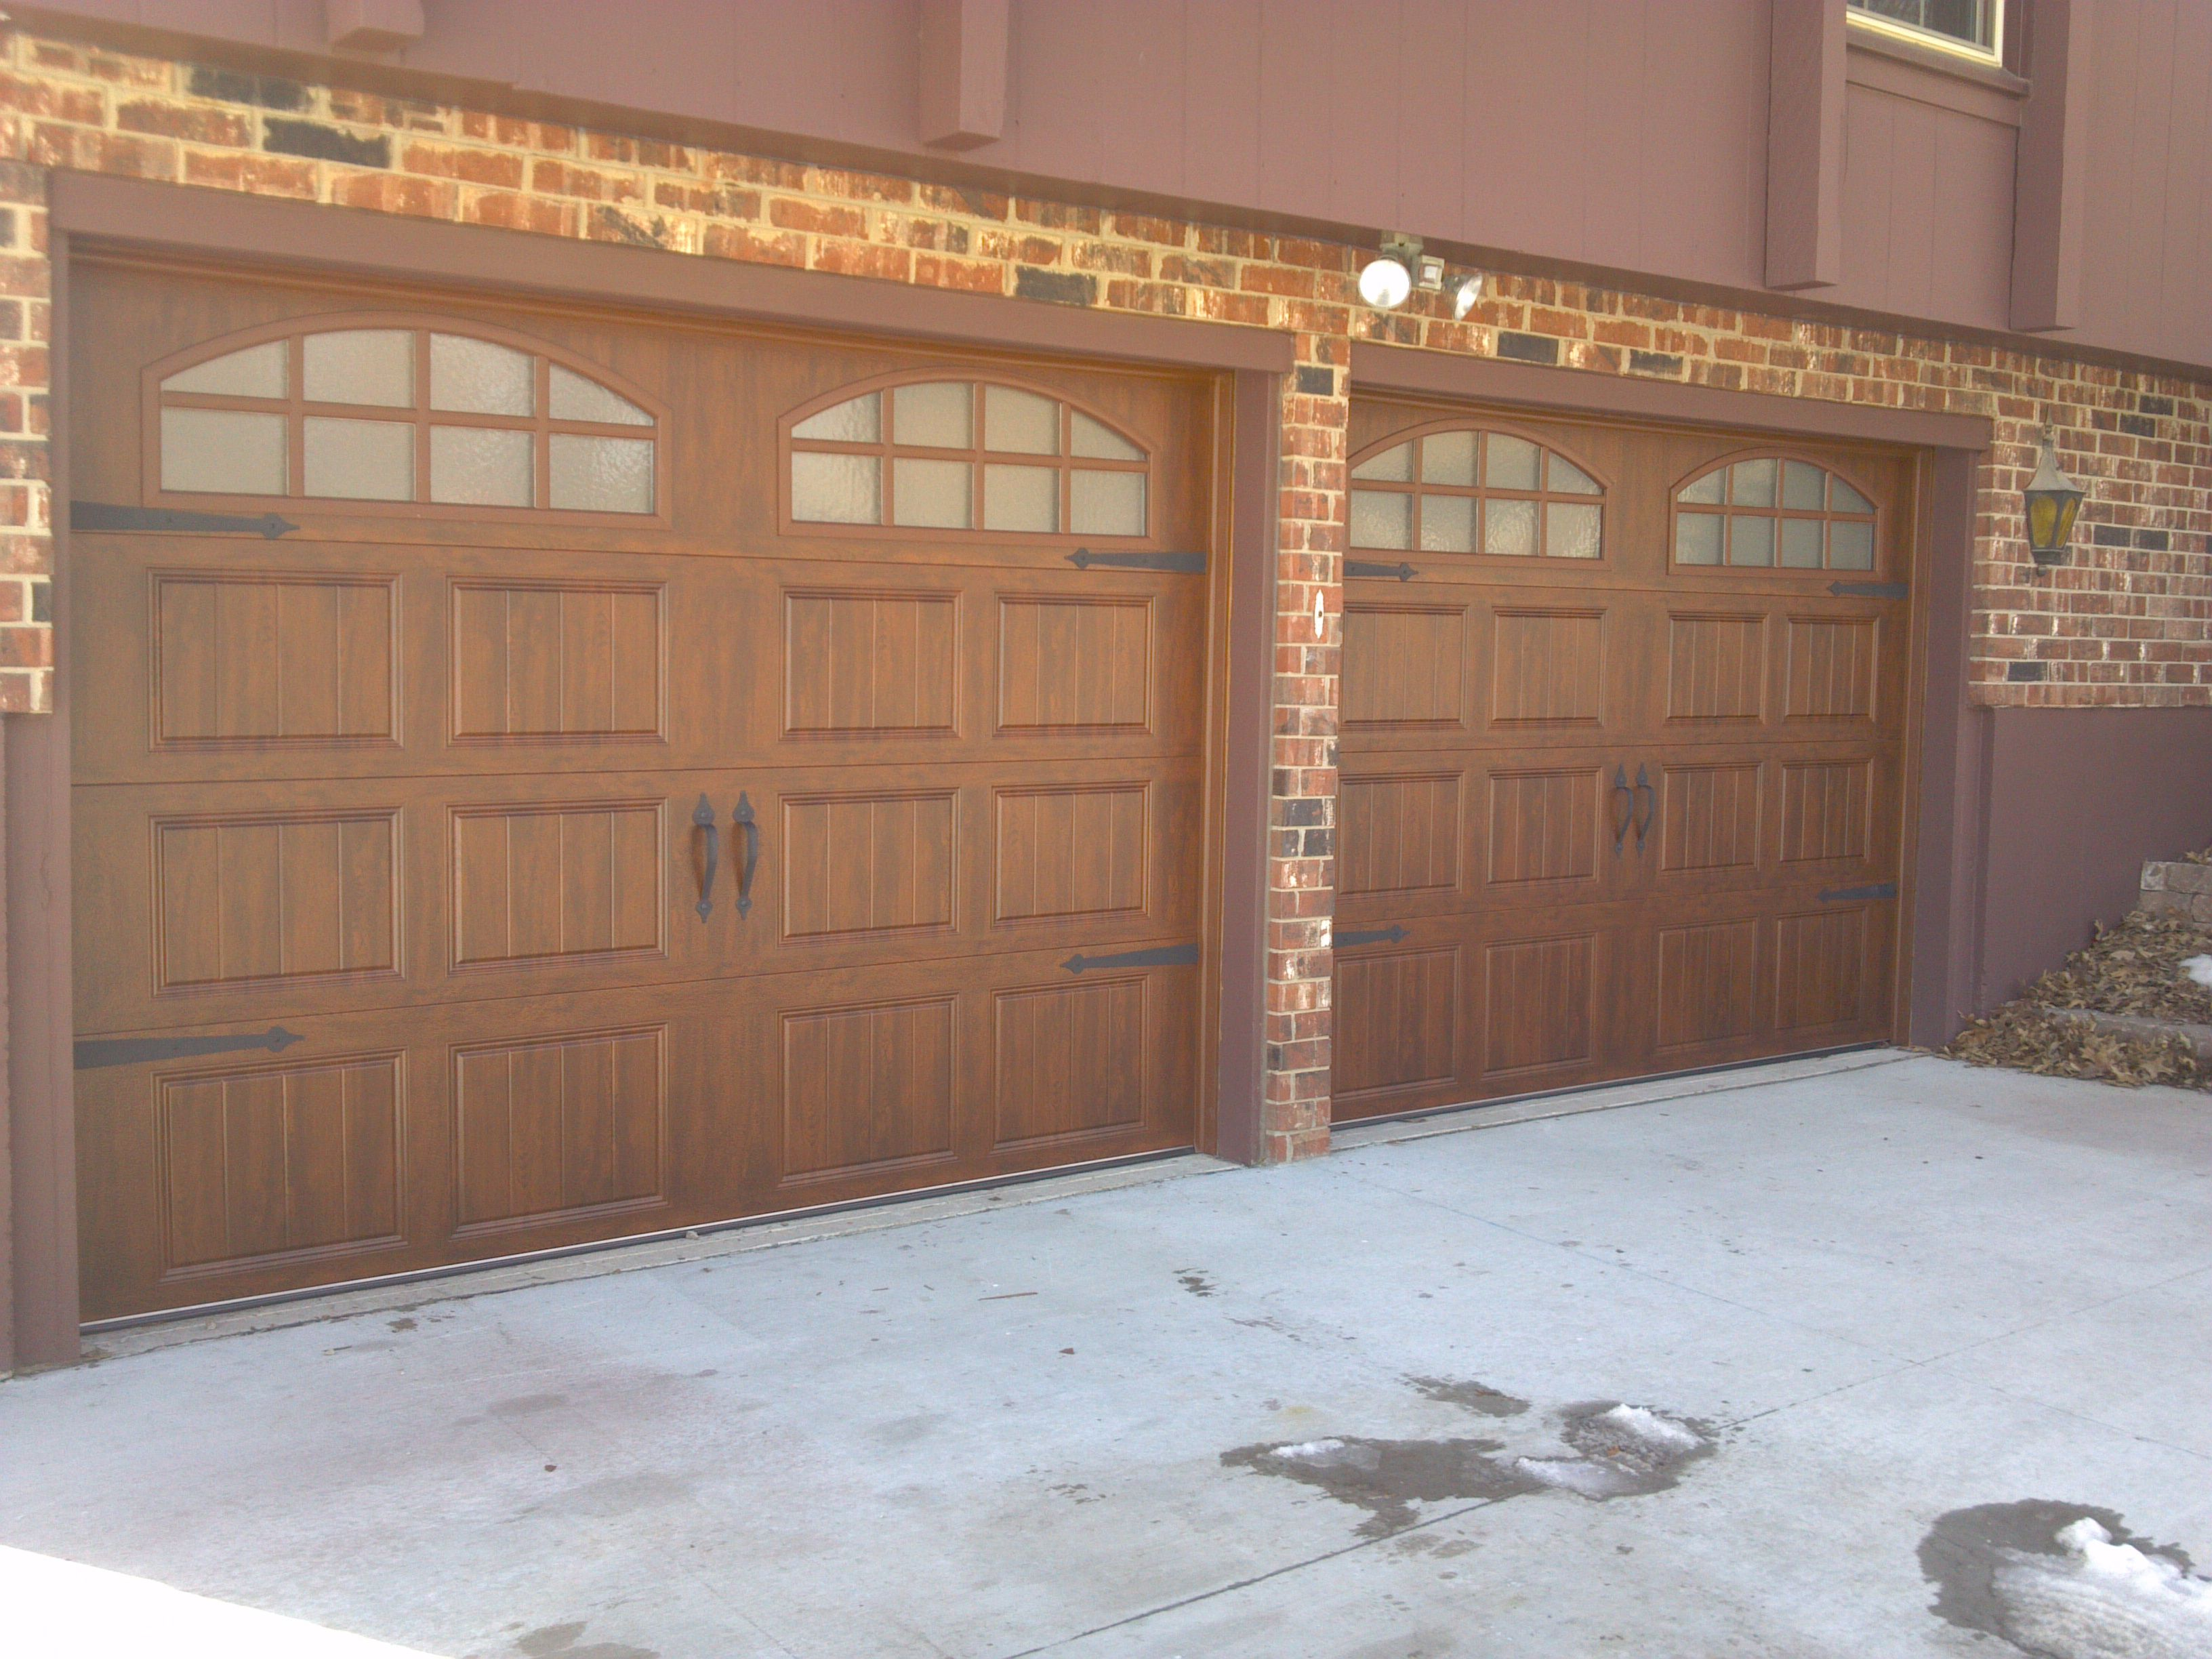 Clopay gallery collection carriage style ultragrain finish for Clopay steel garage doors